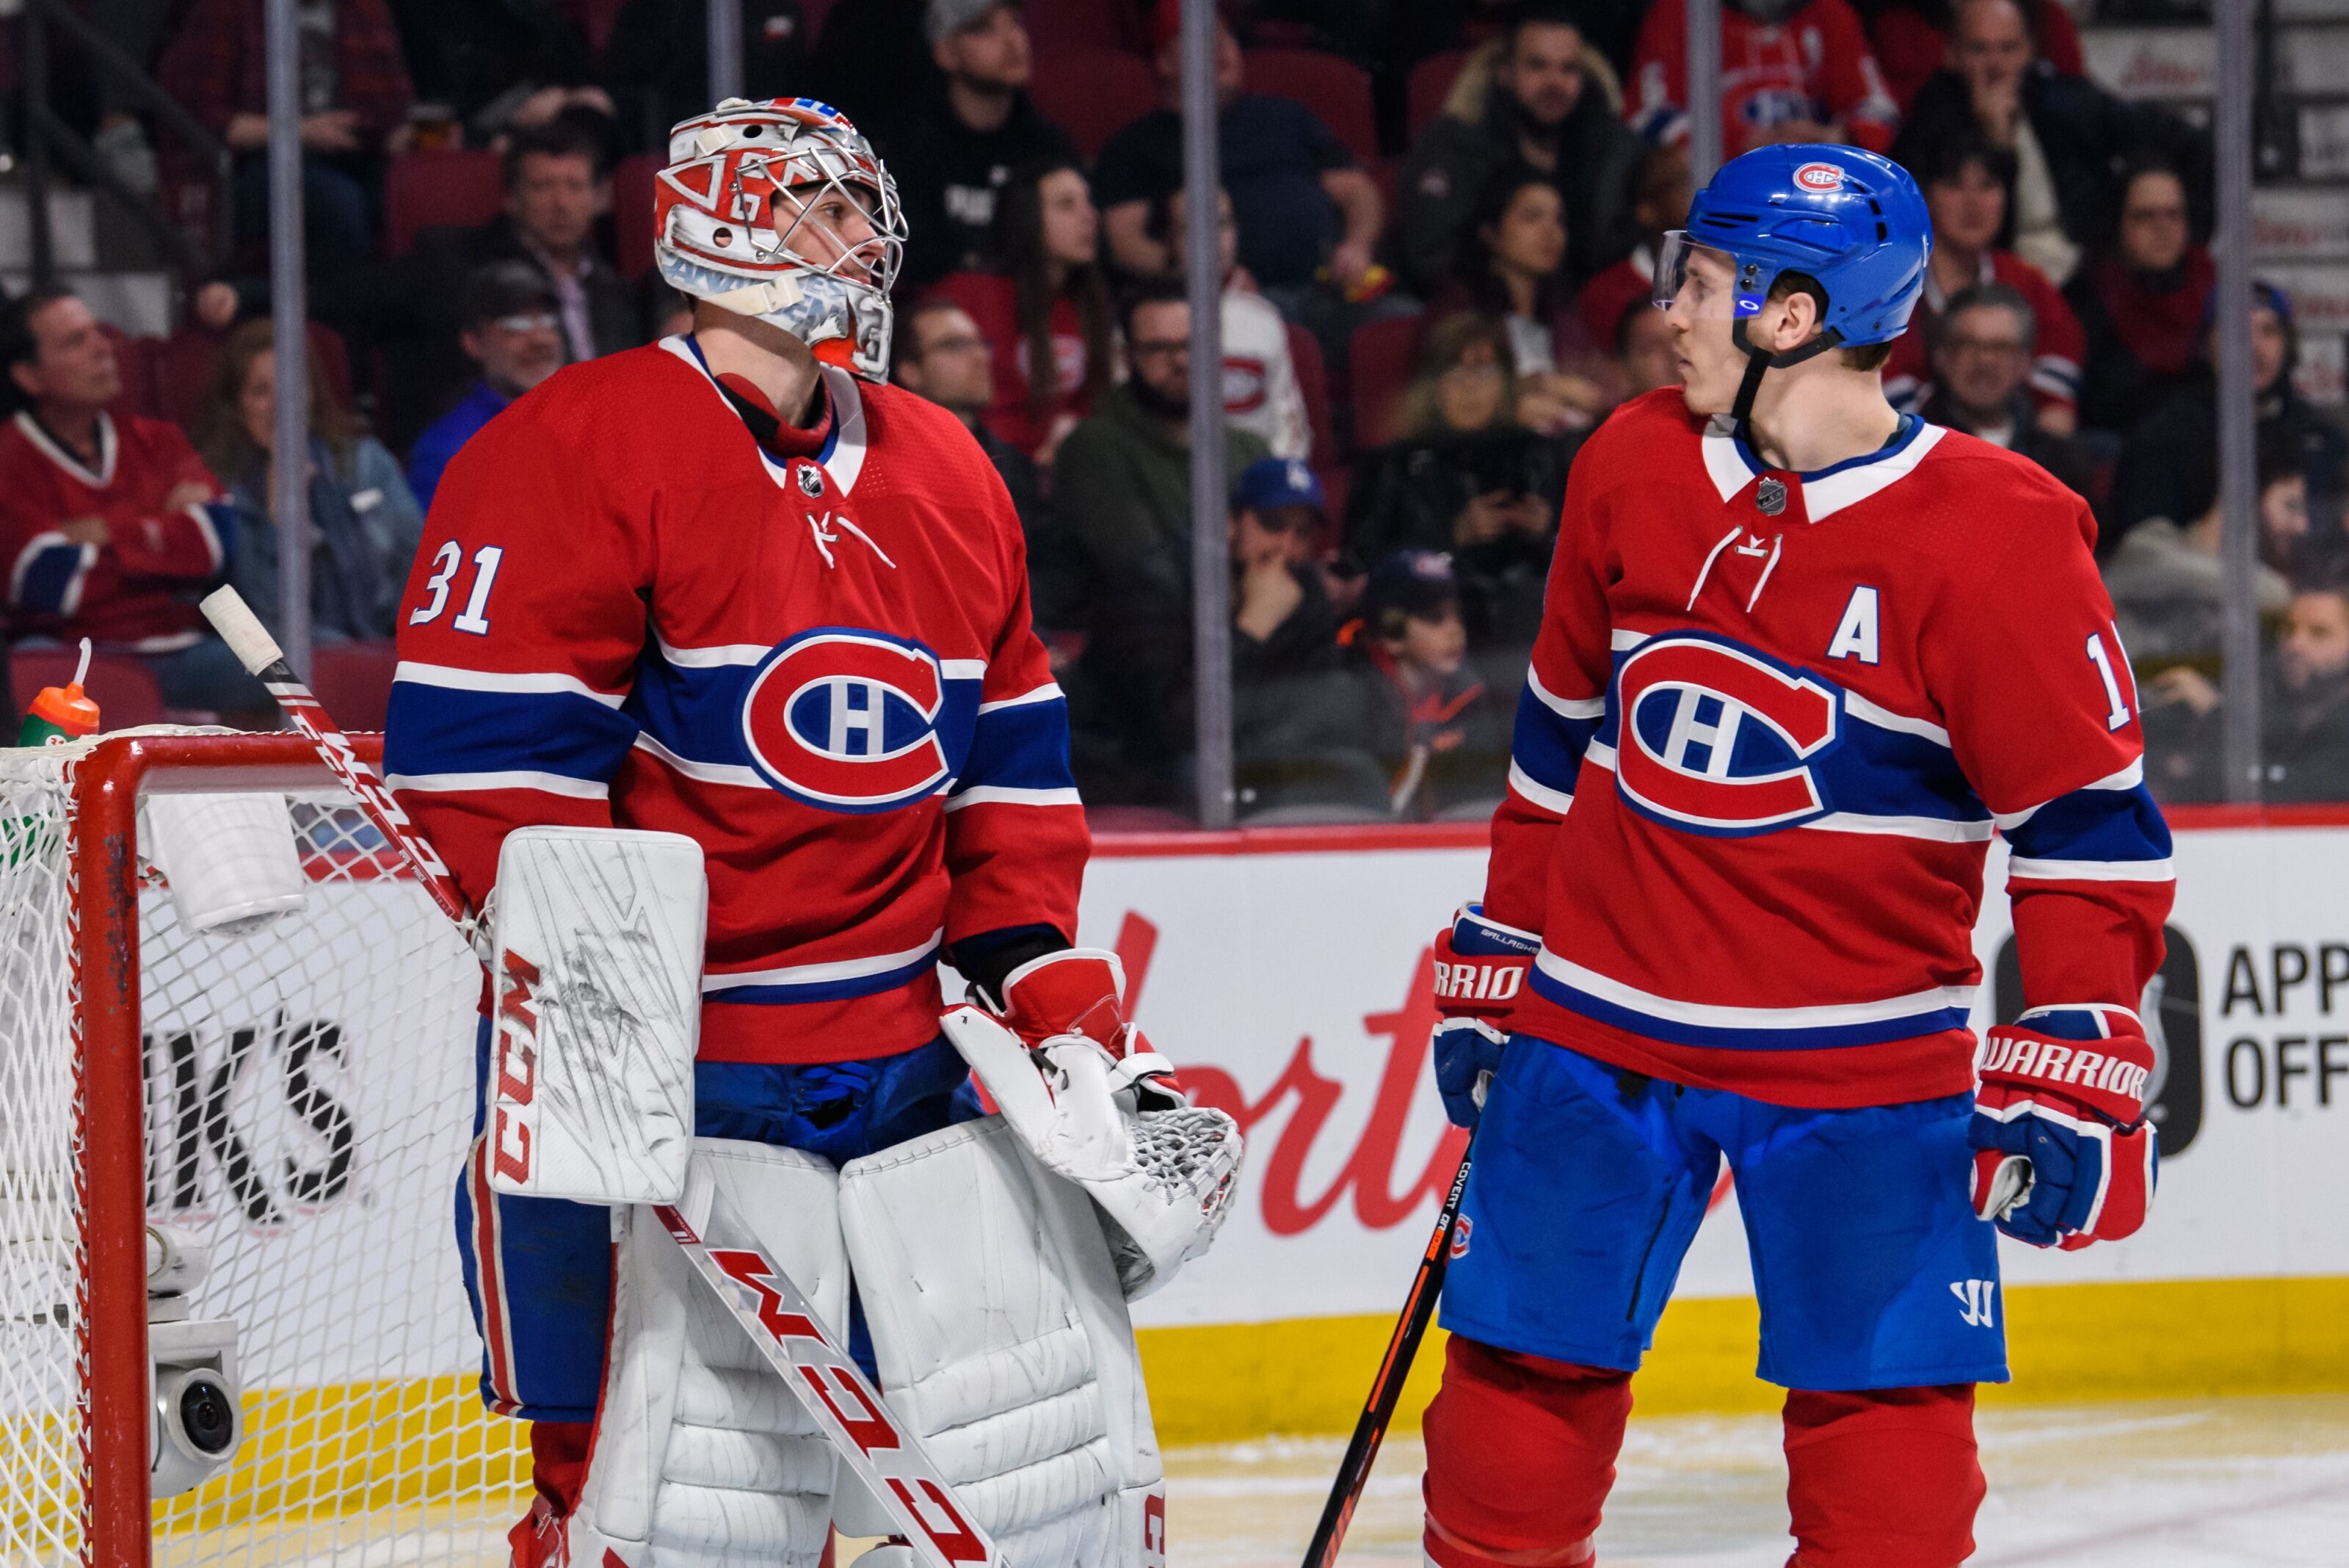 Things for the Montreal Canadiens to embrace and avoid next season